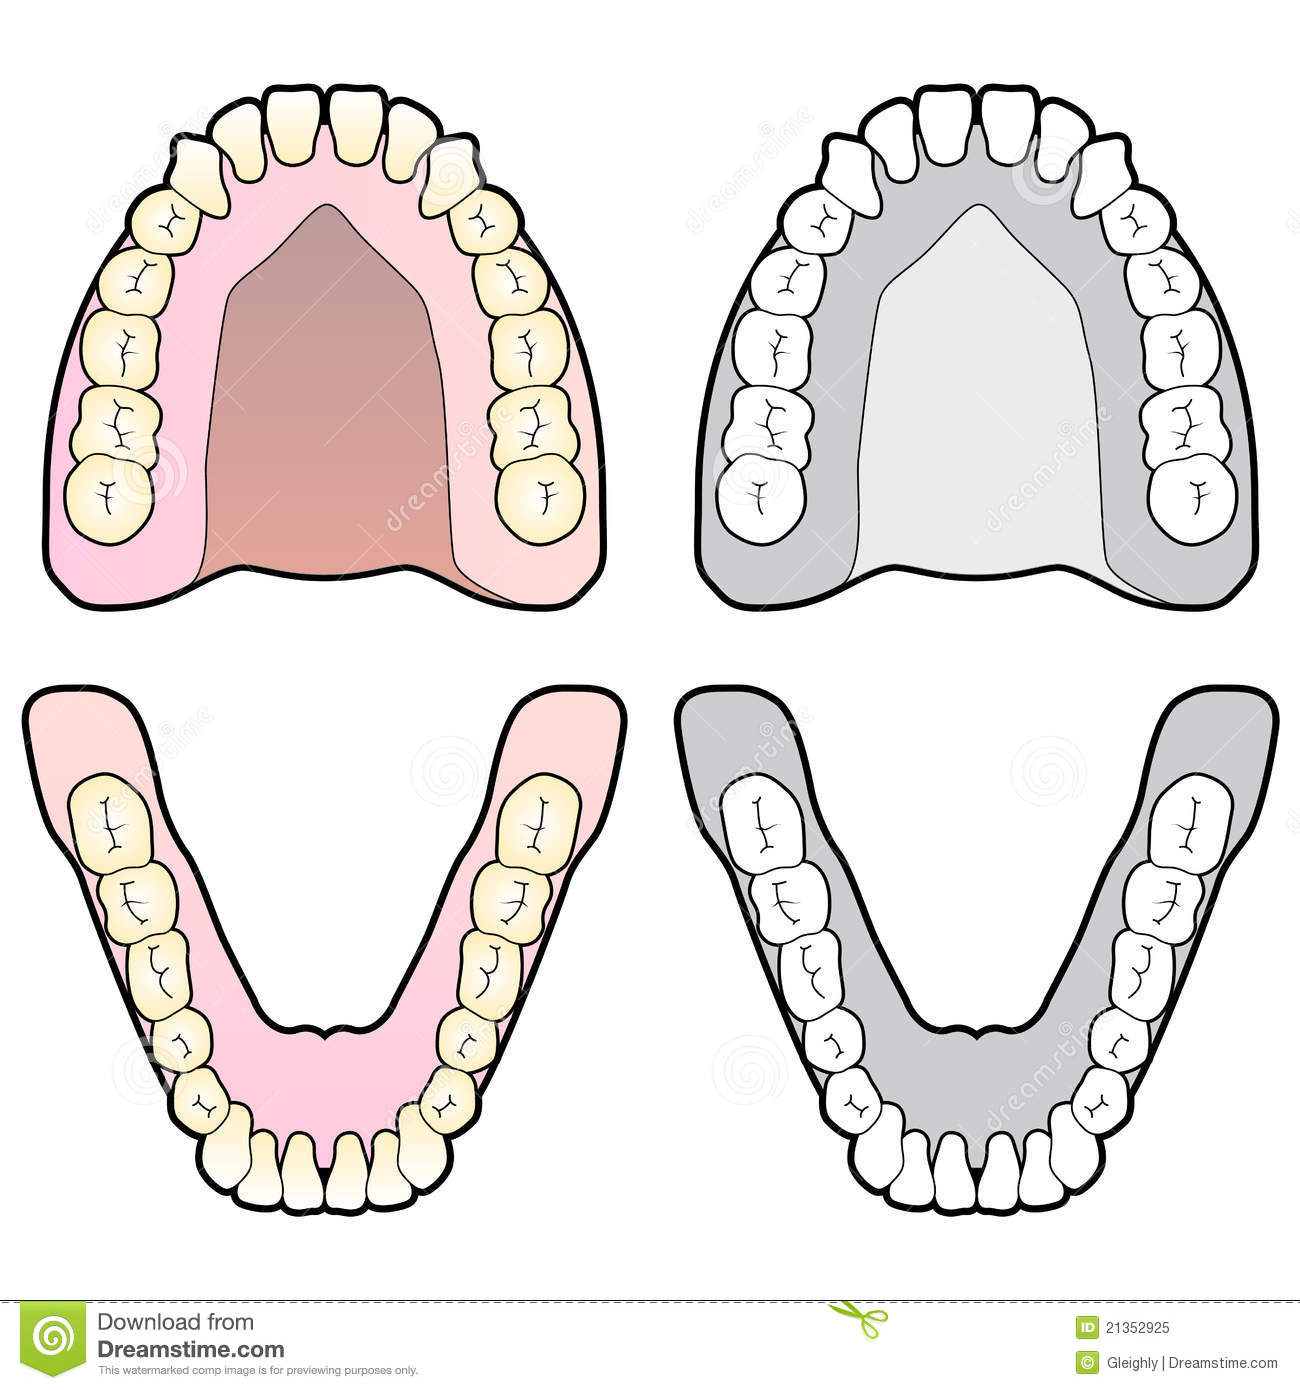 Printable Human Teeth Diagram